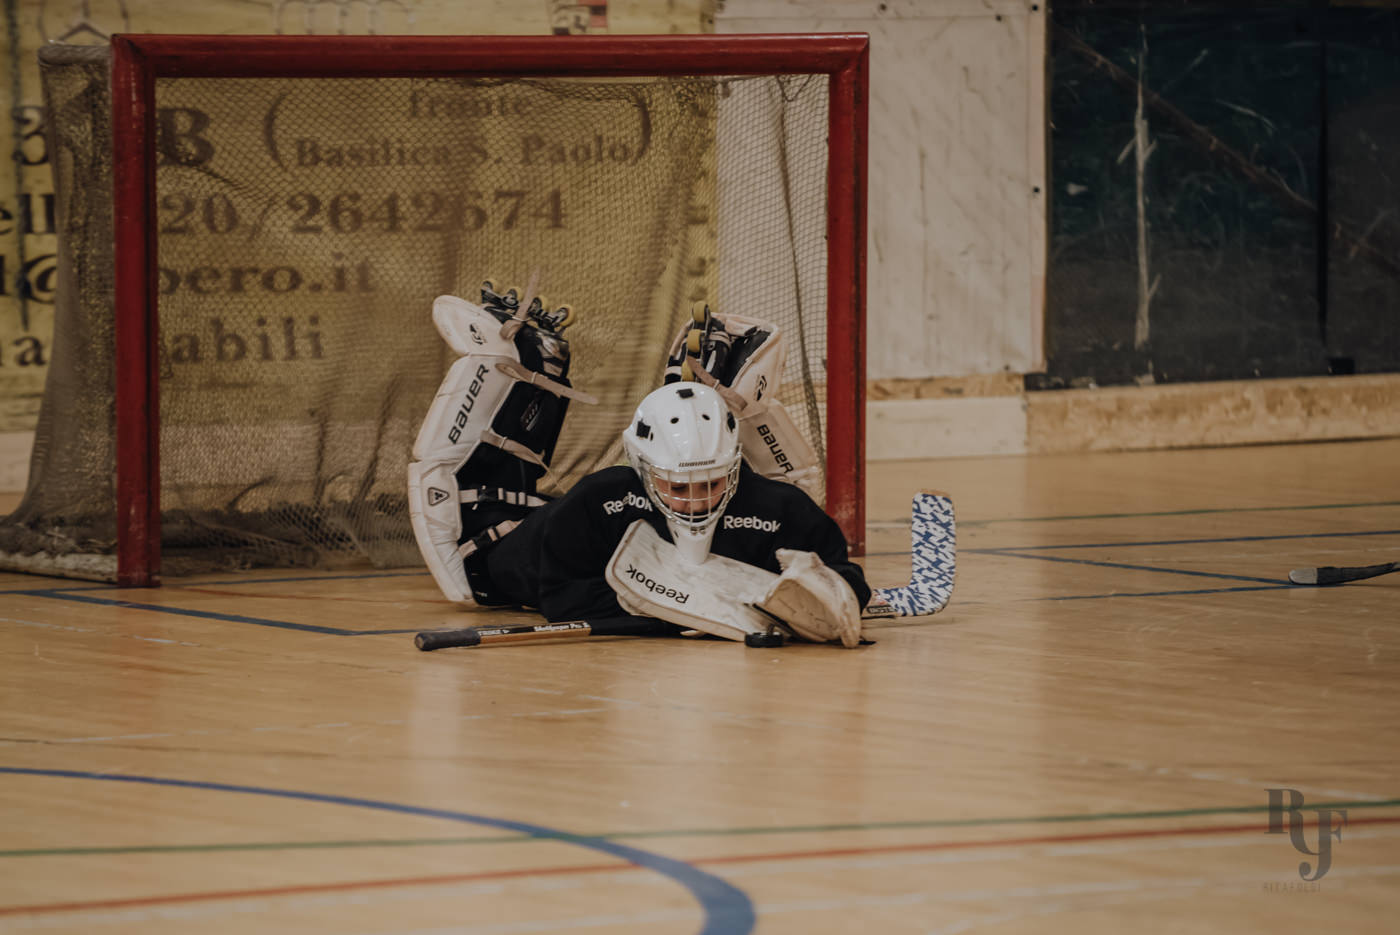 pattinaggio e hockey roma, roma pattinaggio, inline hockey rome, rome hockey, rita foldi photo, sports photography